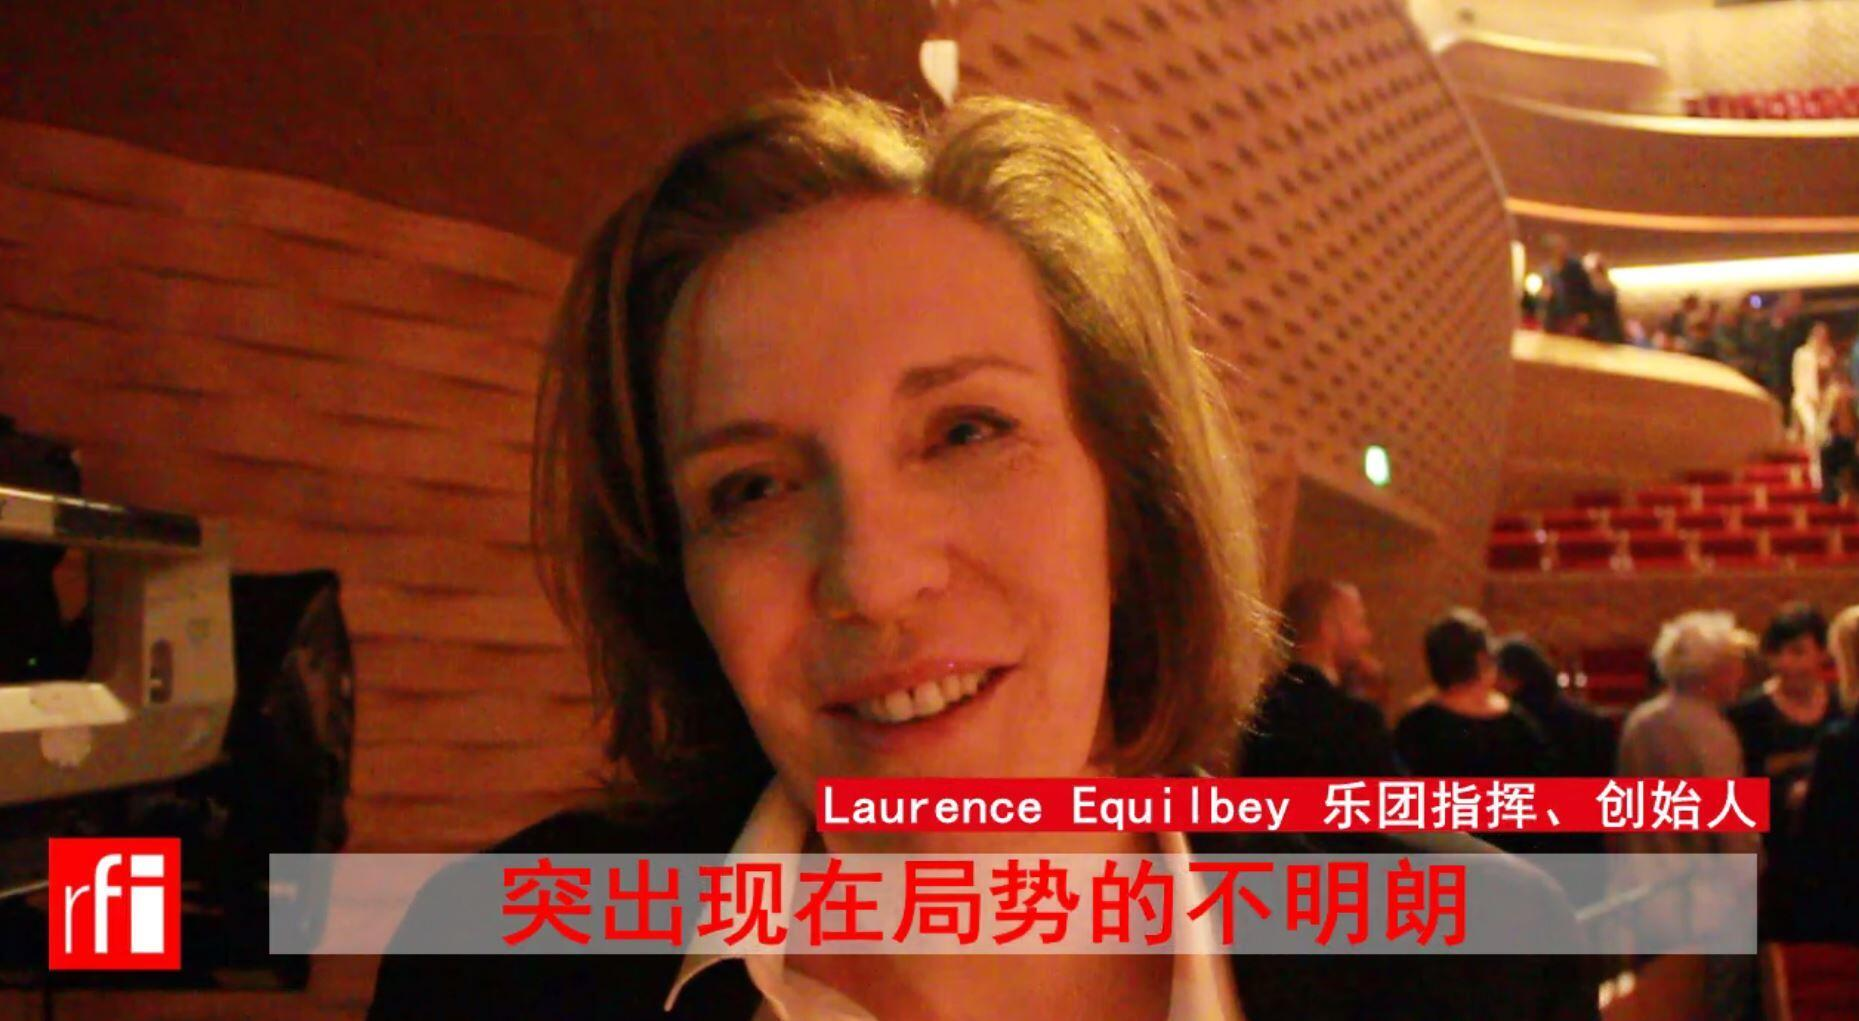 Insula Orchestra和Accentus乐队创始人、指挥Laurence Equilbey